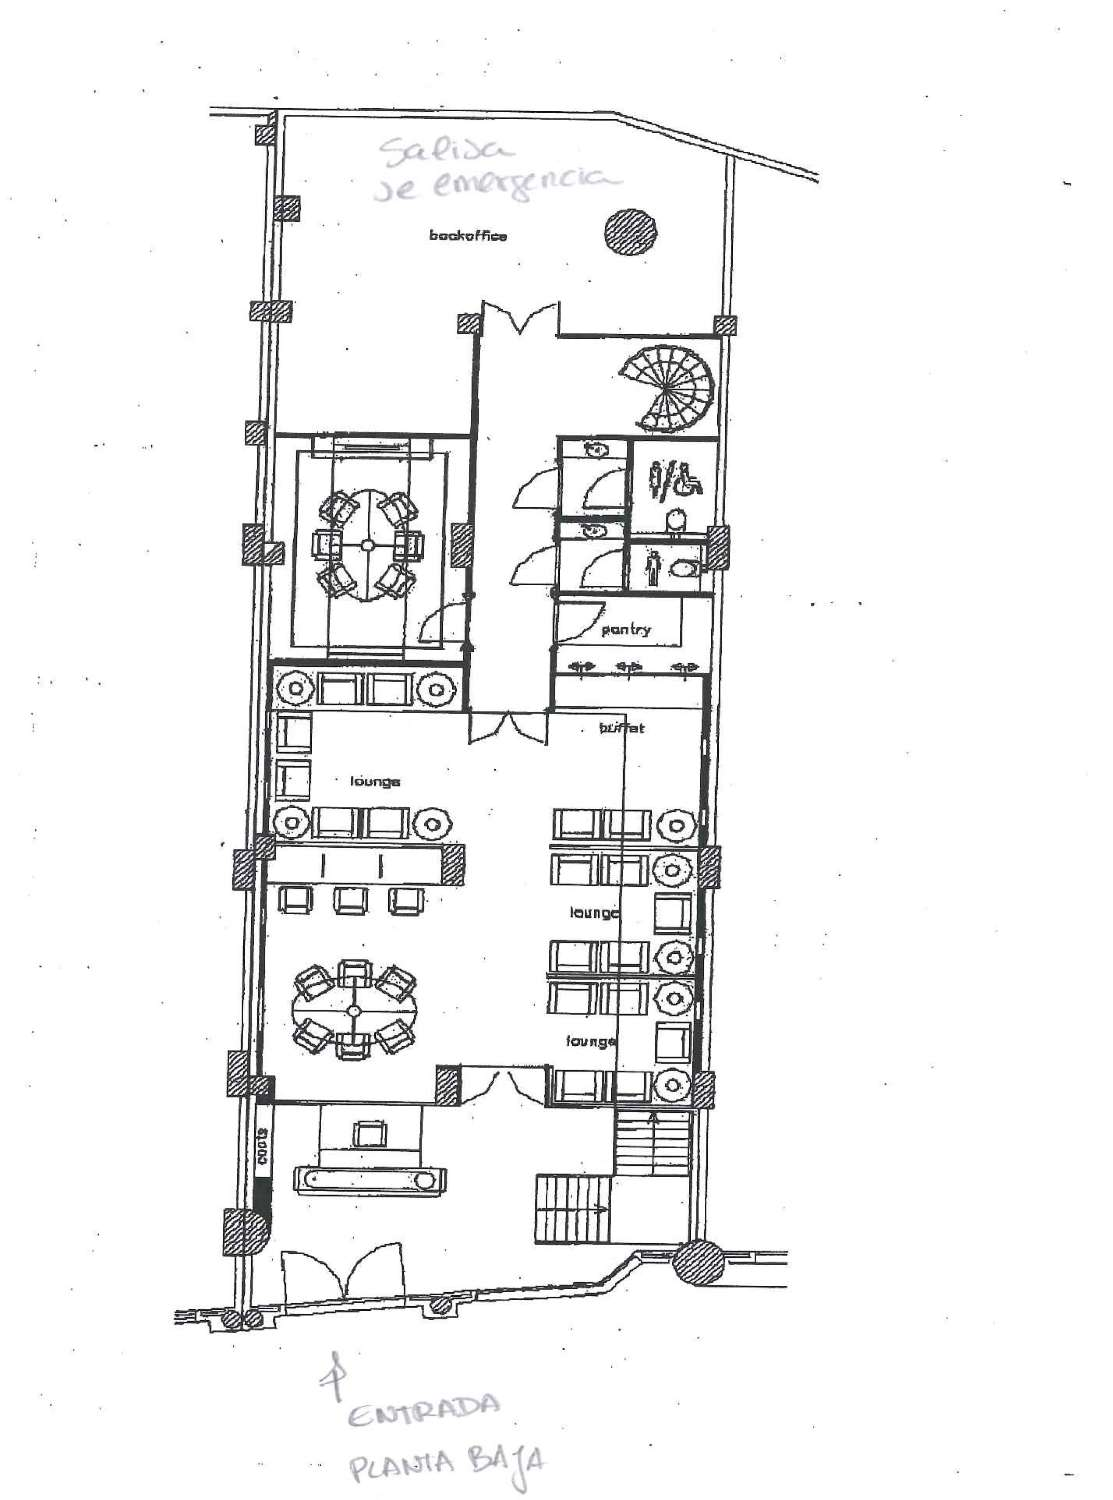 No commission. Total of 322 sq m. Privileged location, near the beach on a very busy street. Puerto Banus.